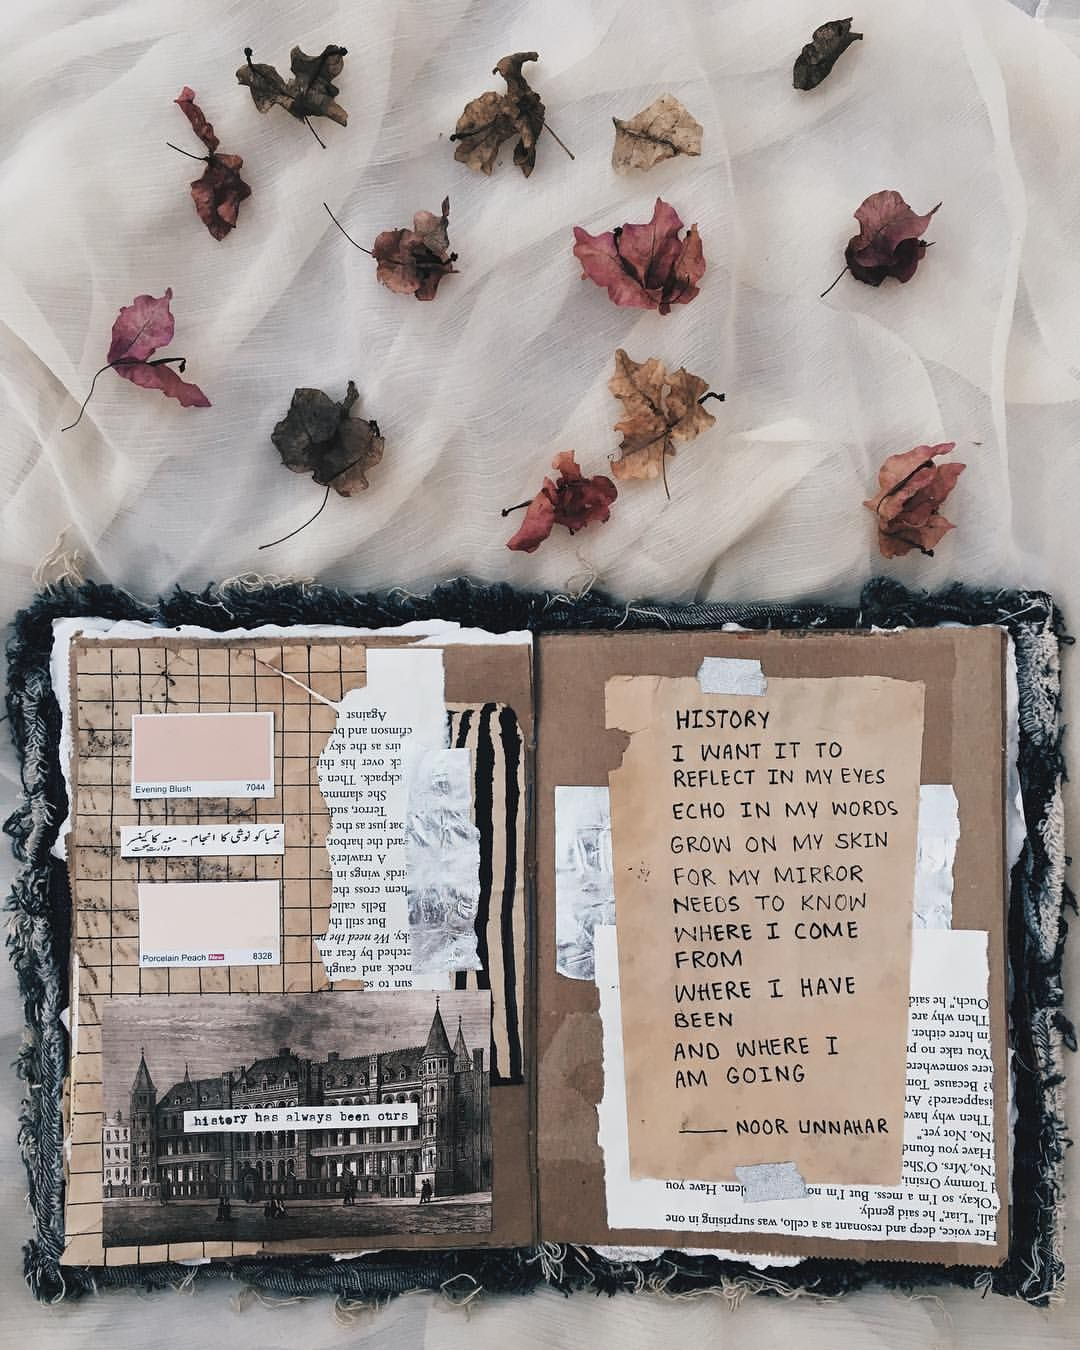 Journaling Scrapbooking Ideas Inspiration Artsy Creative Works Notebook Writing Writers Of Color Tumblr Hipsters Aesthetics Indie Grunge Diy Craft For